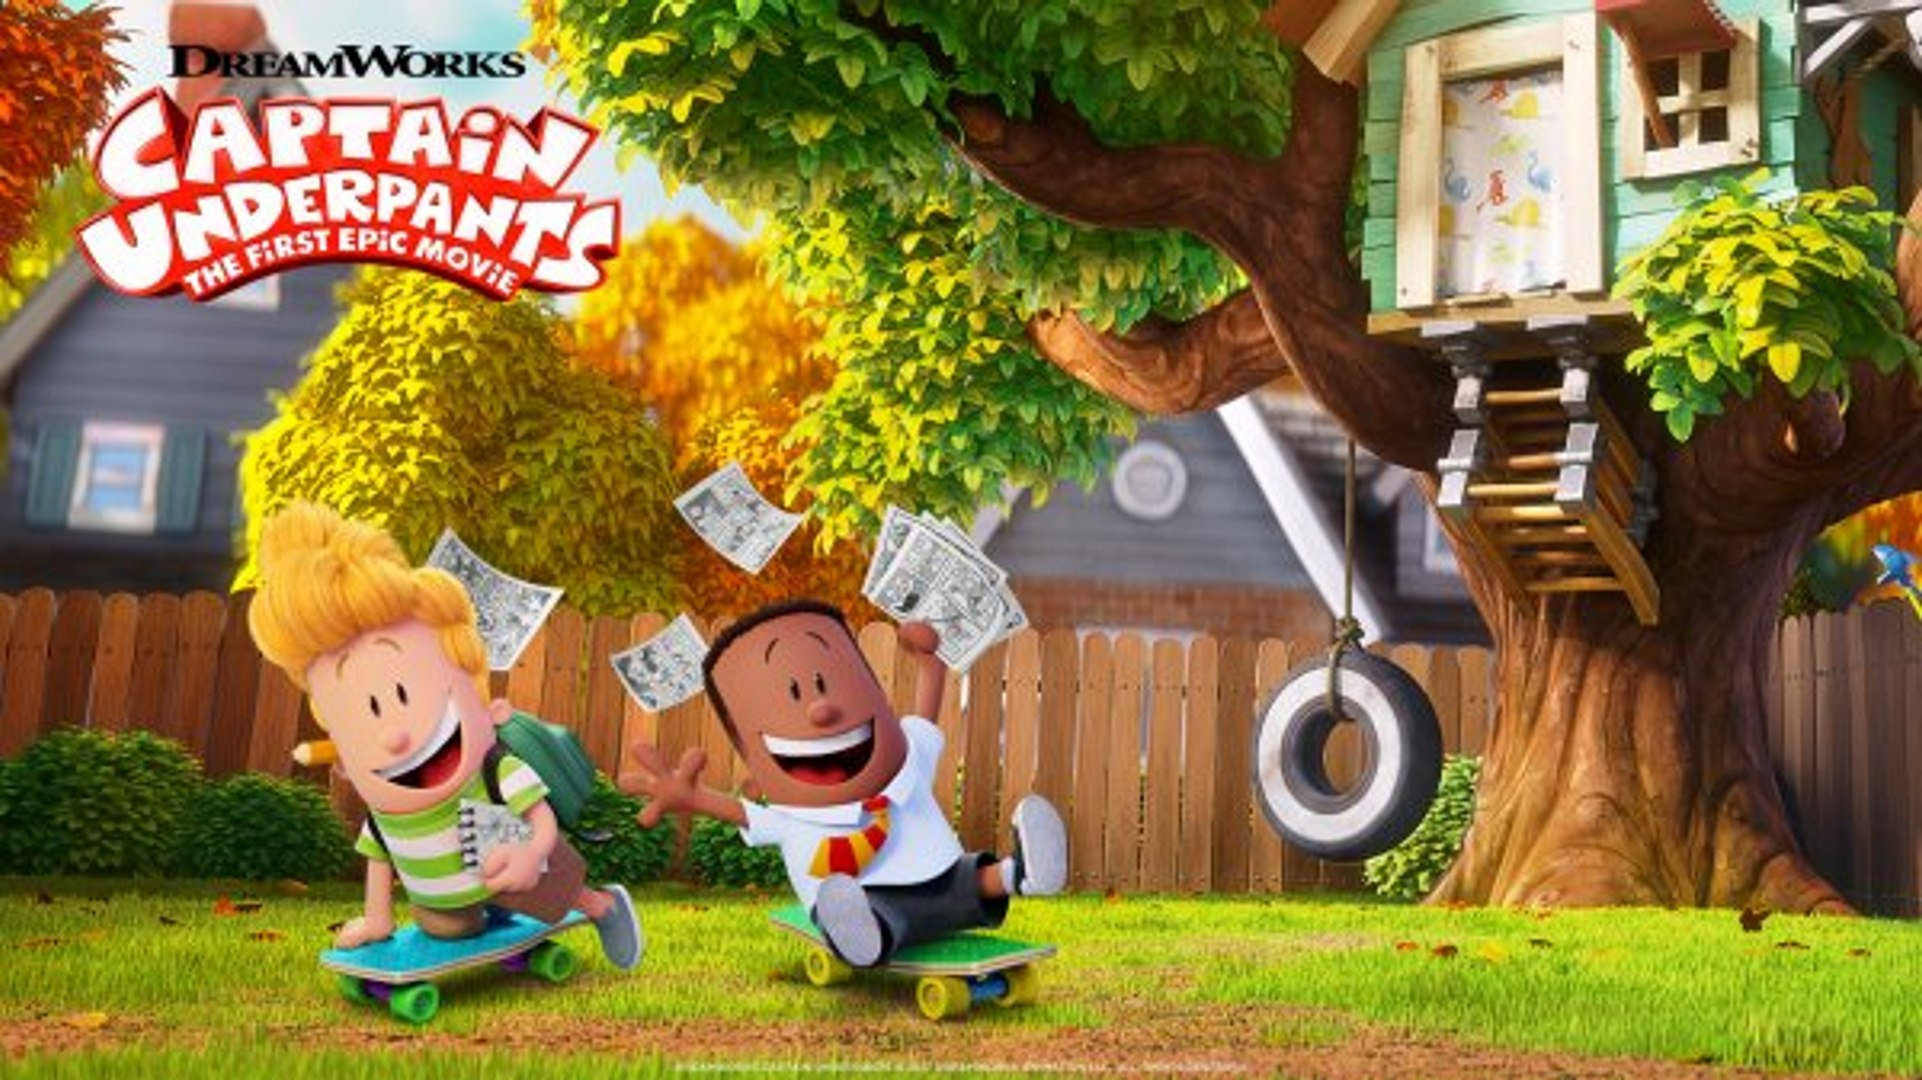 Captain Underpants: The First Epic Movies (2017) free Download full movies